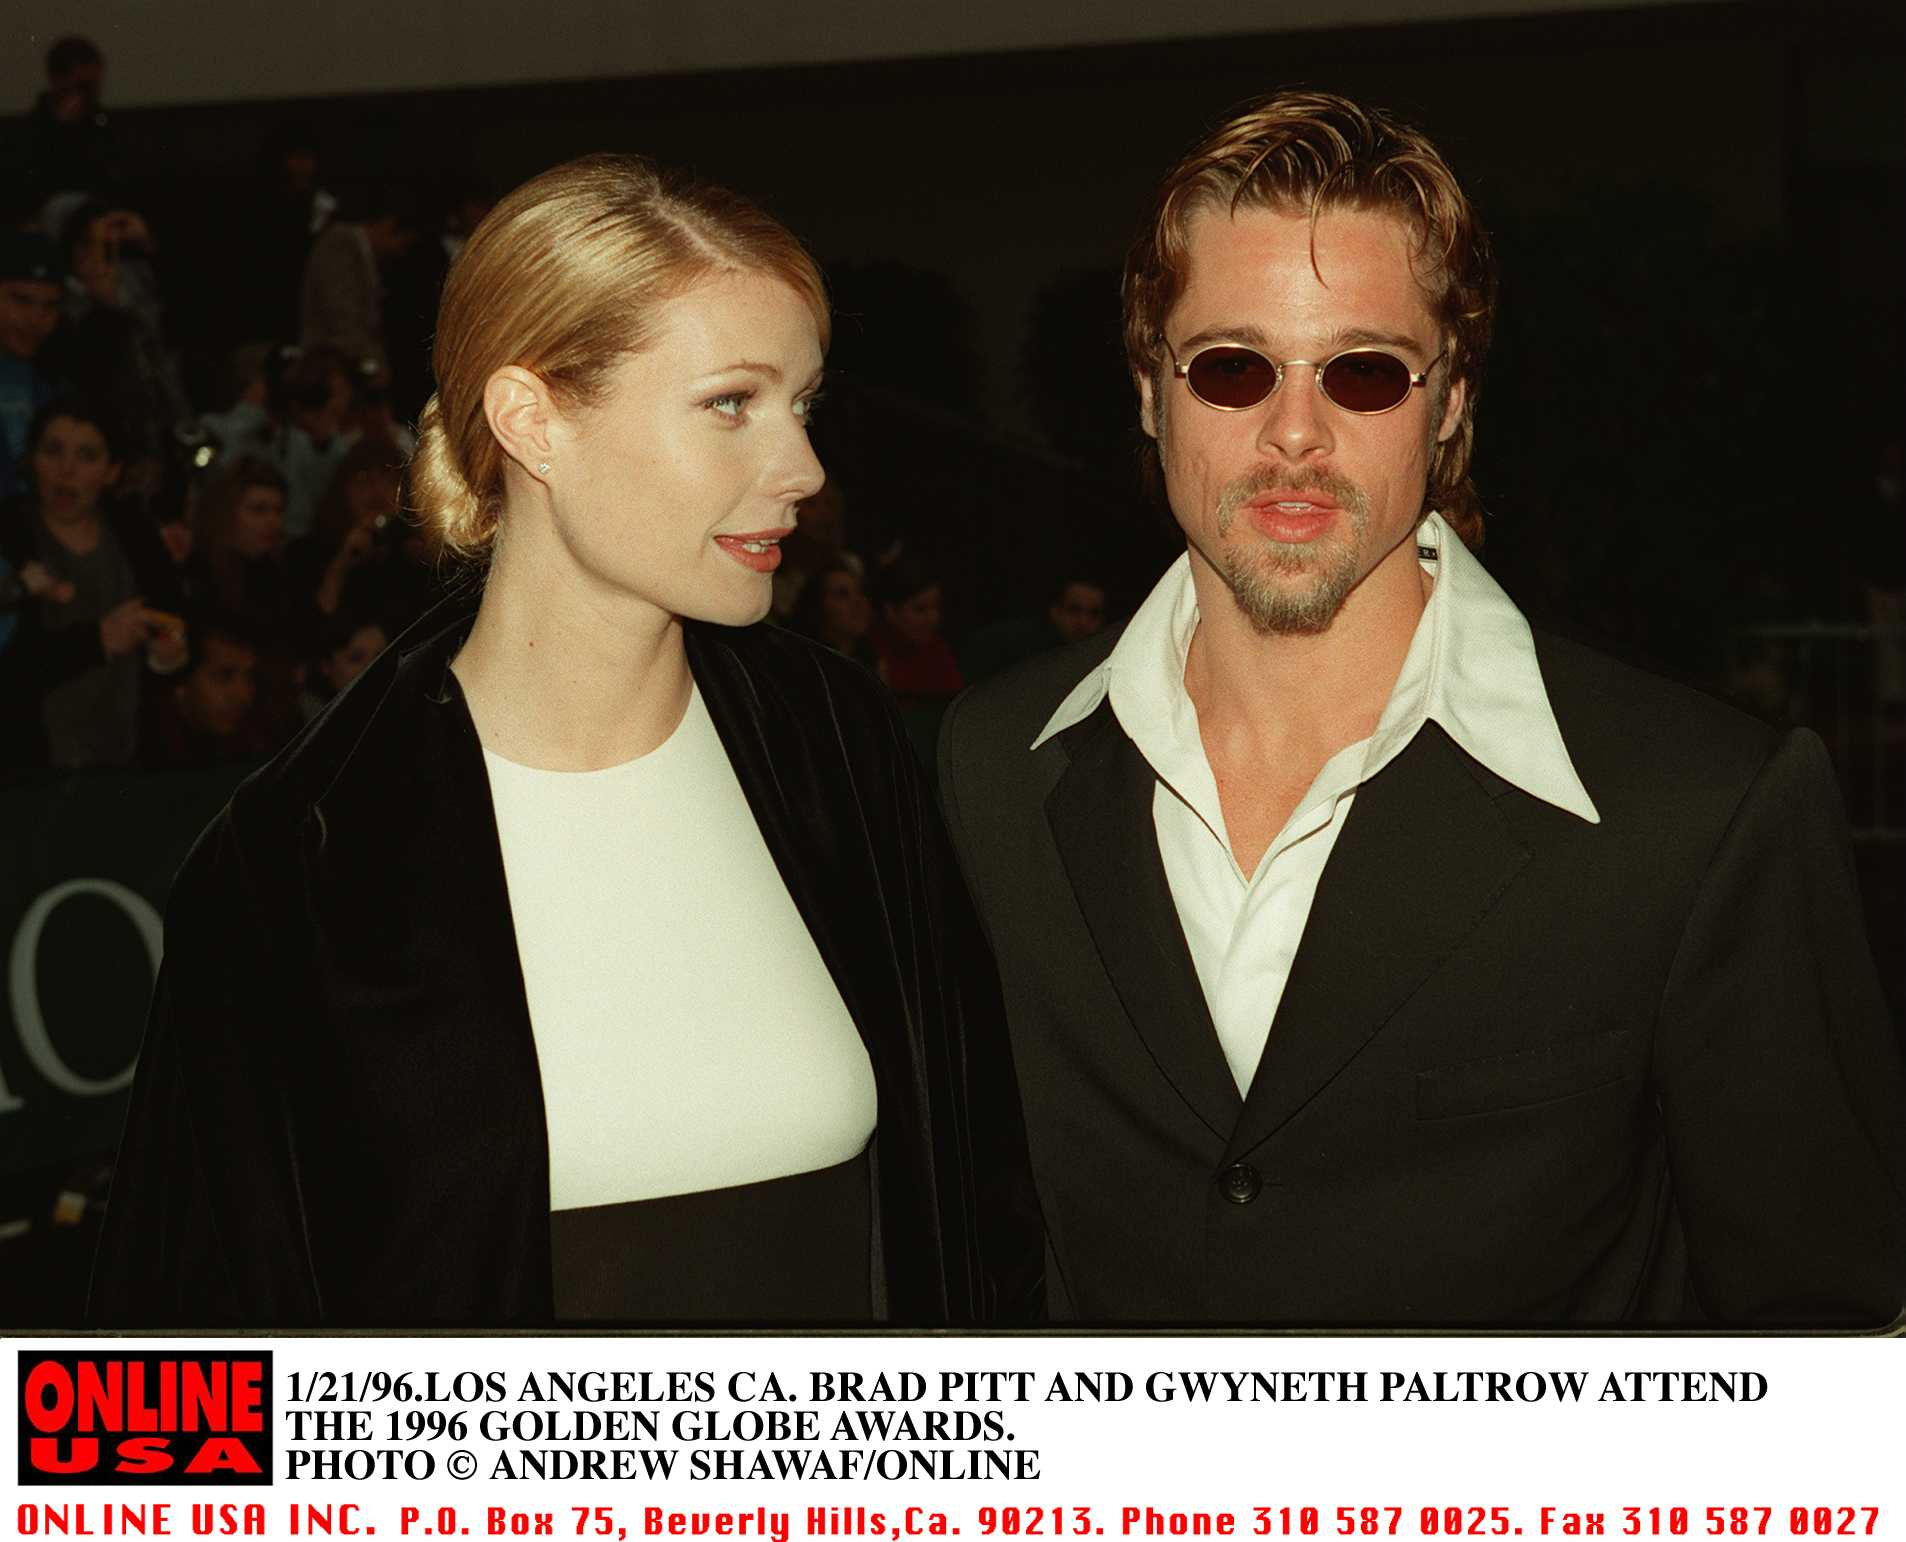 Actors Brad Pitt and Gwyneth Paltrow attend the 1996 Golden Globe Awards. | Source: Getty Images.